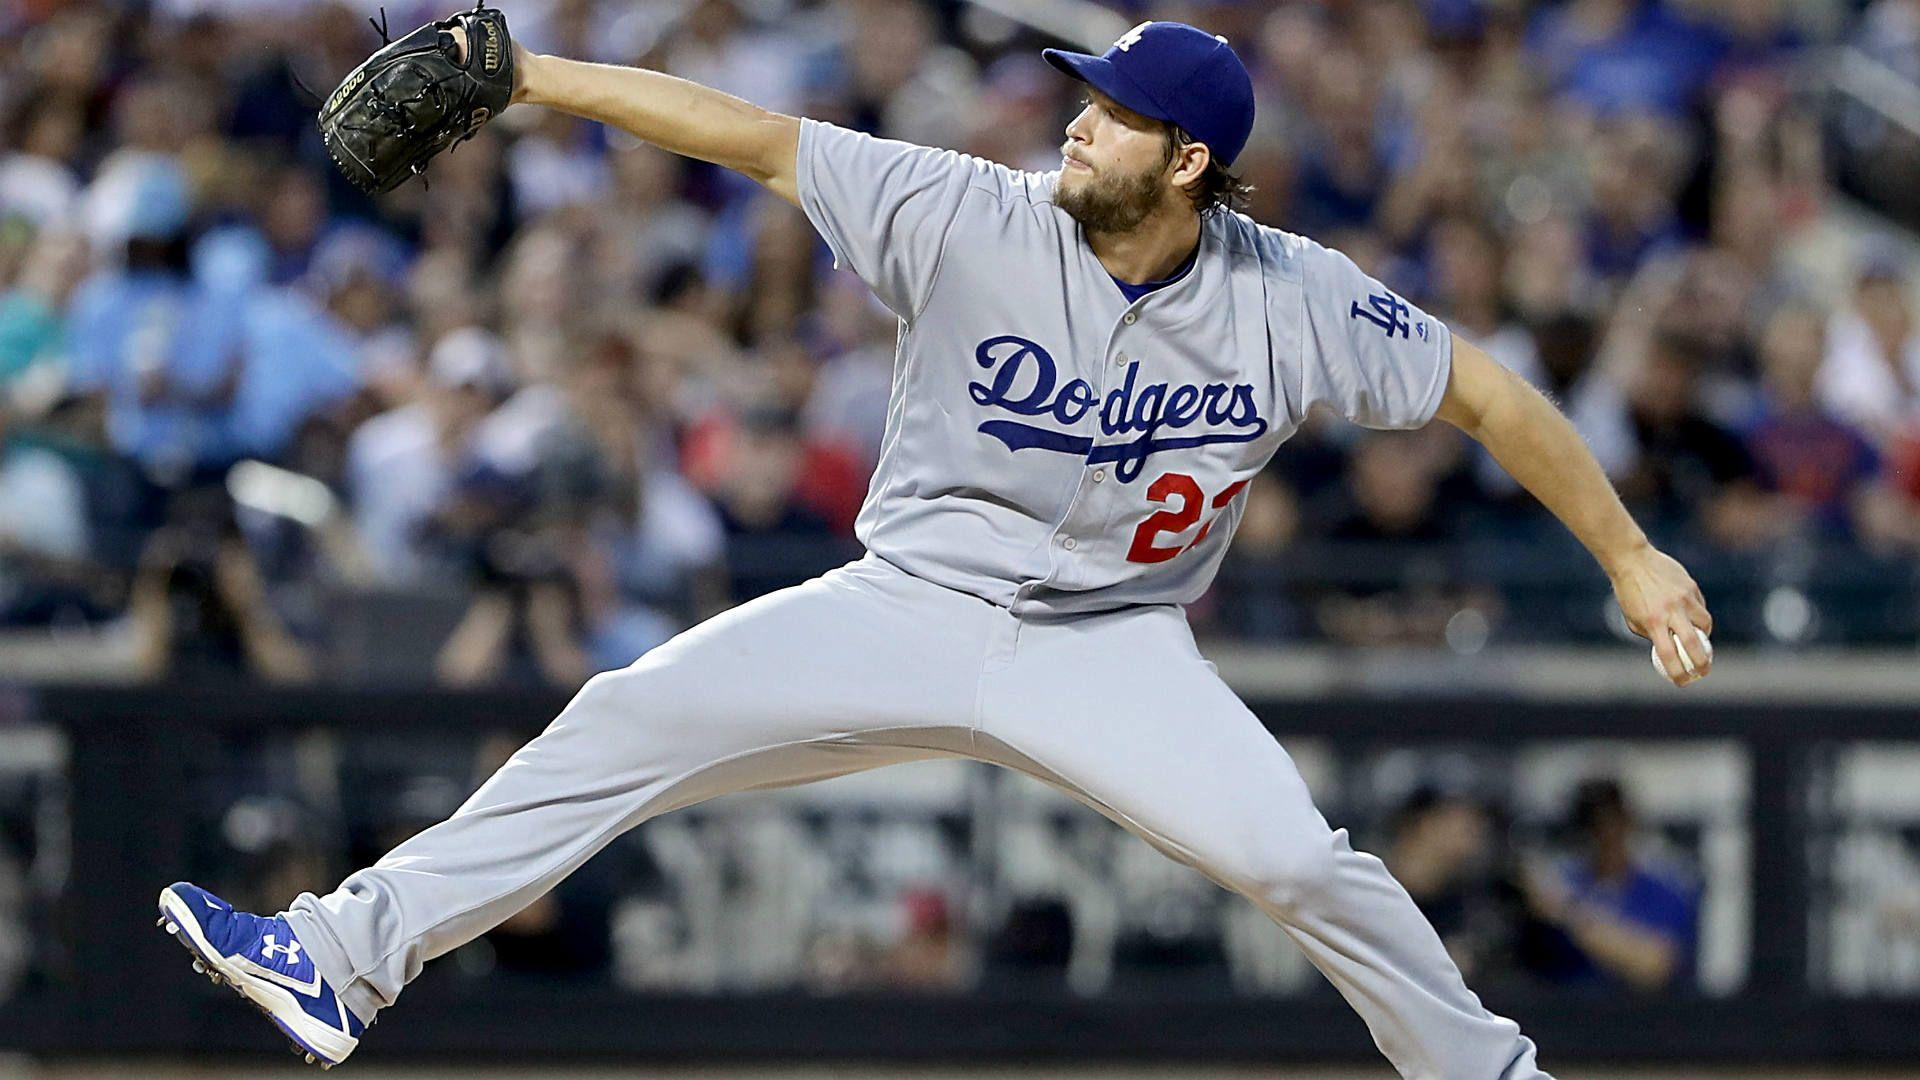 Clayton Kershaw is taking aim at Pedro Martinez's historic 2000